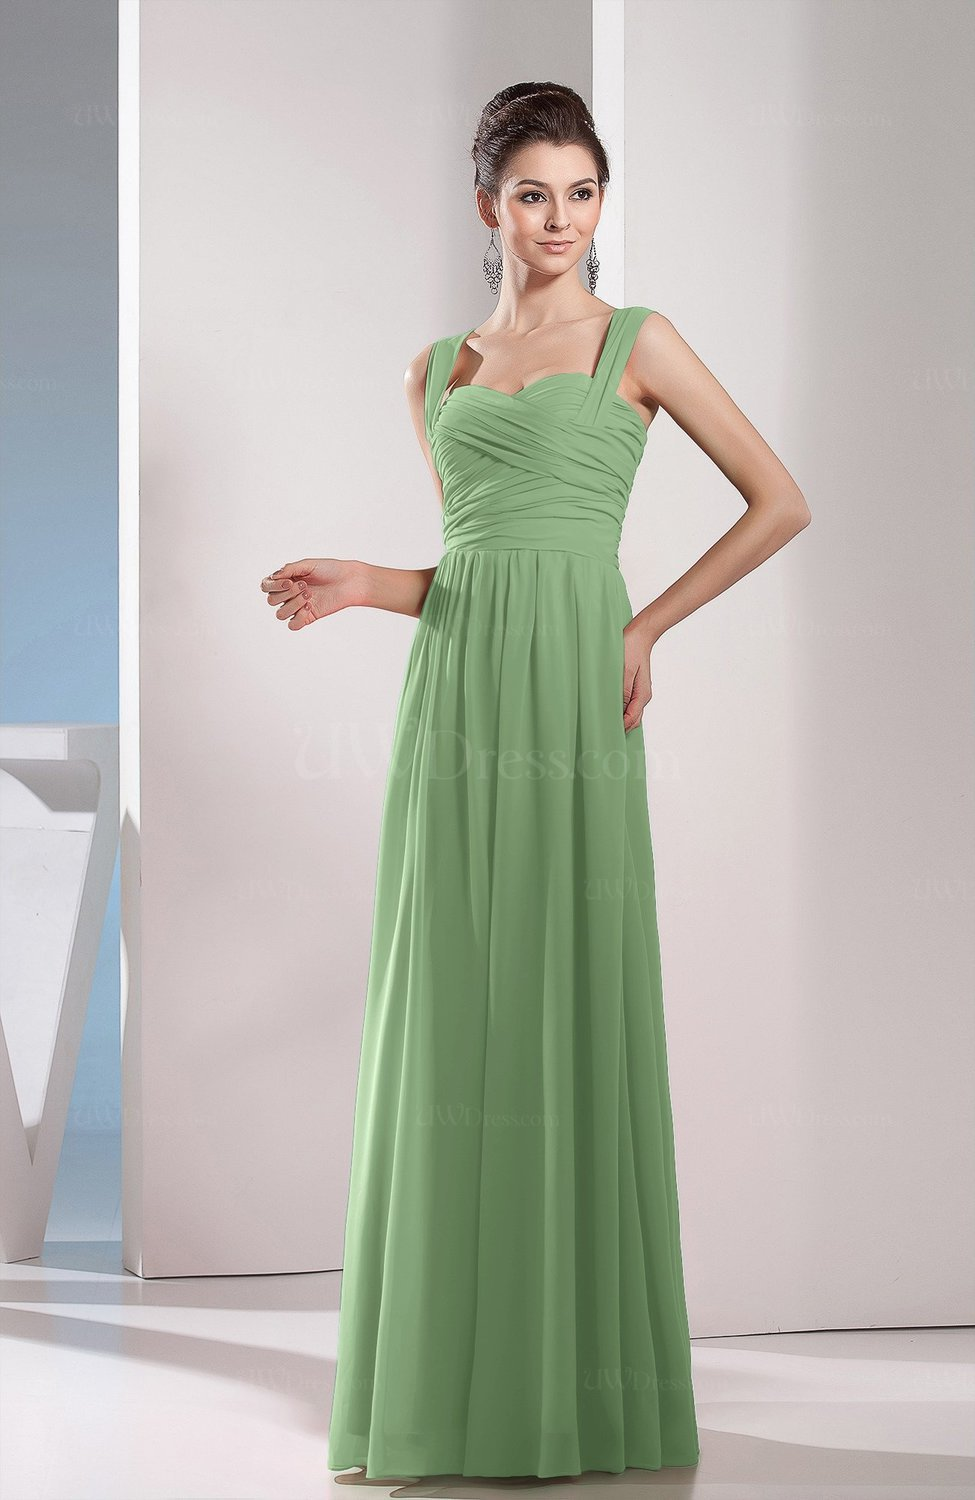 Bridesmaid dresses uwdress sage green cute a line chiffon floor length ruching bridesmaid dresses ombrellifo Gallery